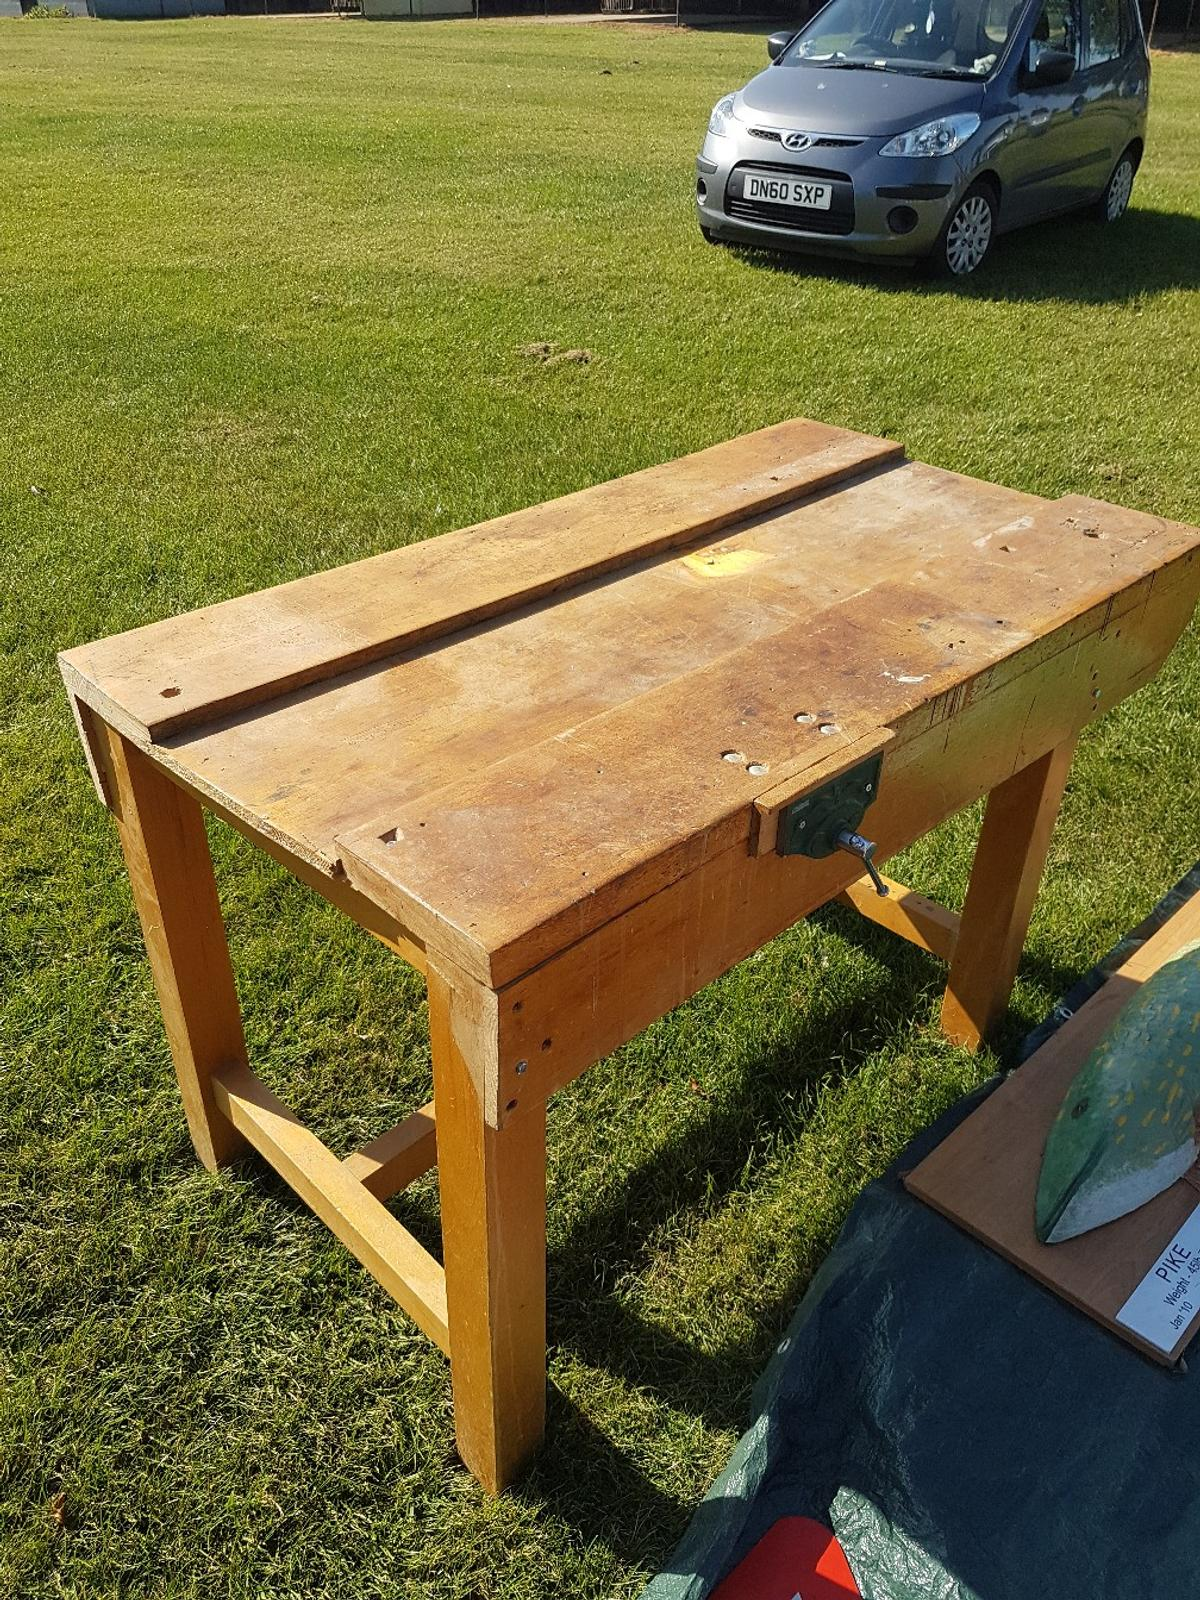 Groovy Vintage School Beech Work Bench Gmtry Best Dining Table And Chair Ideas Images Gmtryco